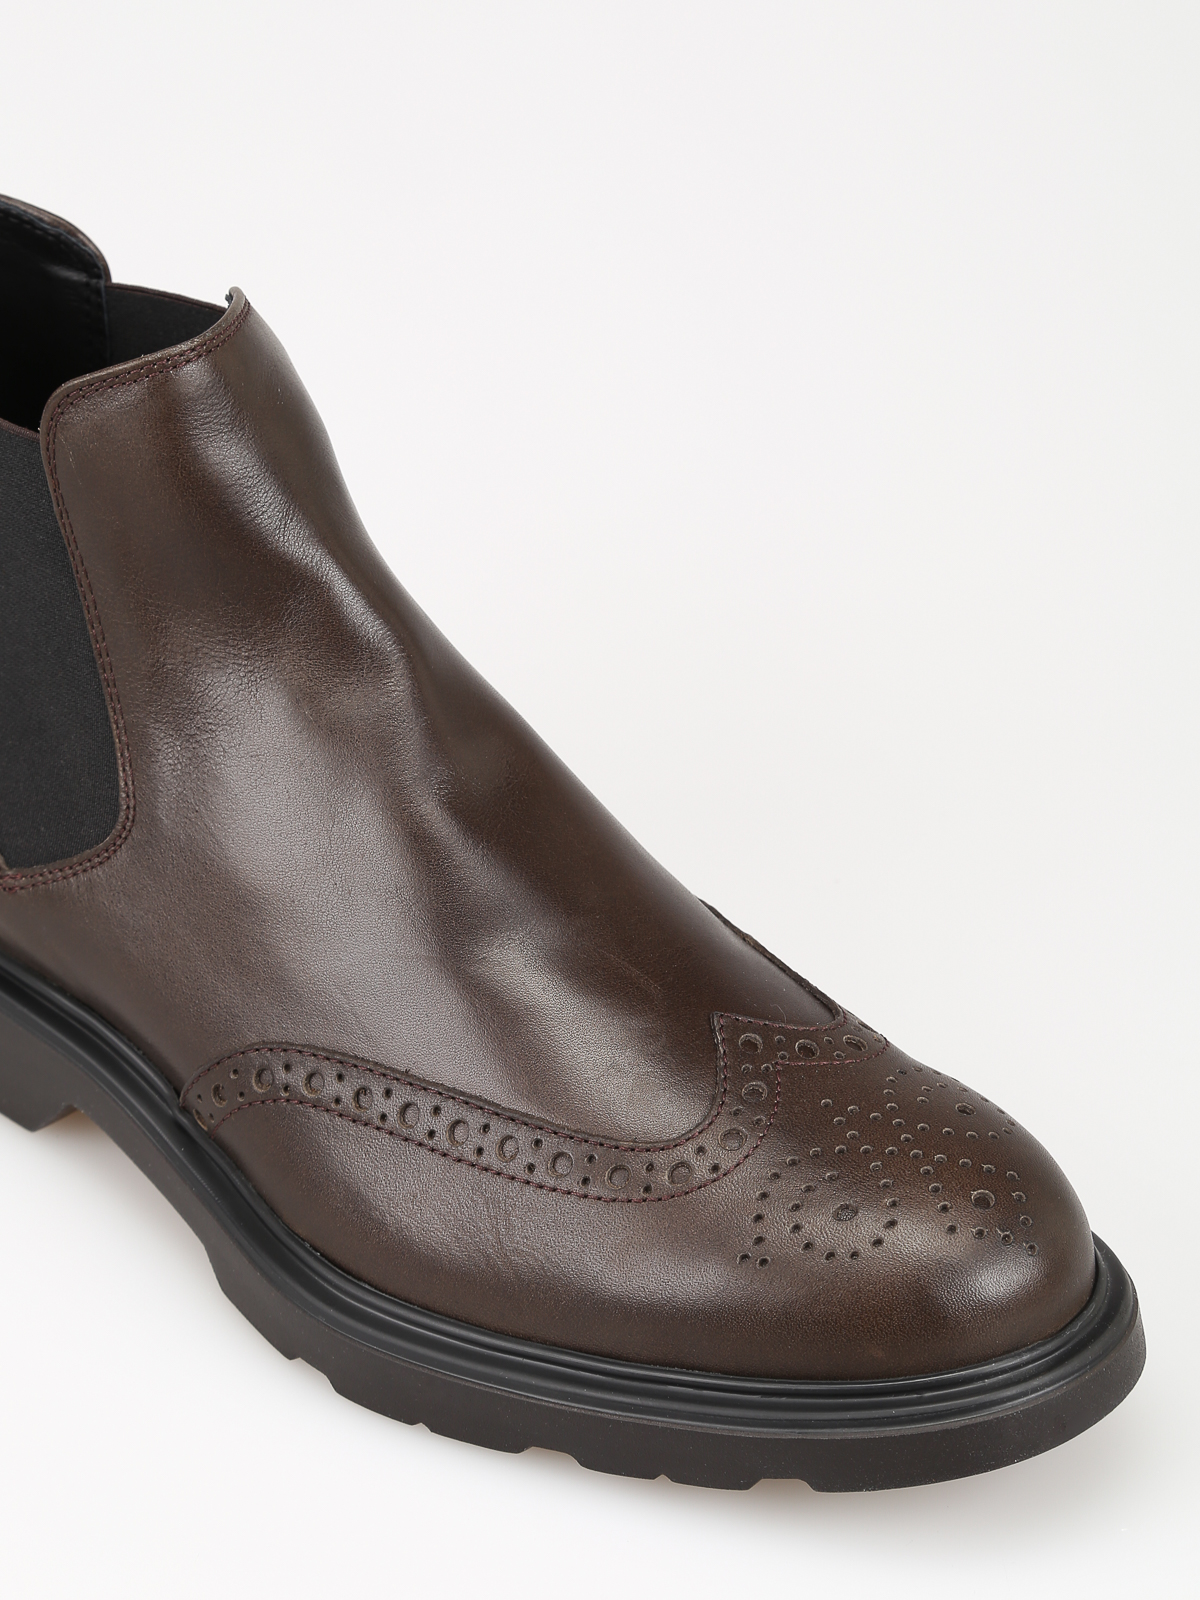 Ankle boots Hogan - H393 brown leather Beatle boots ...